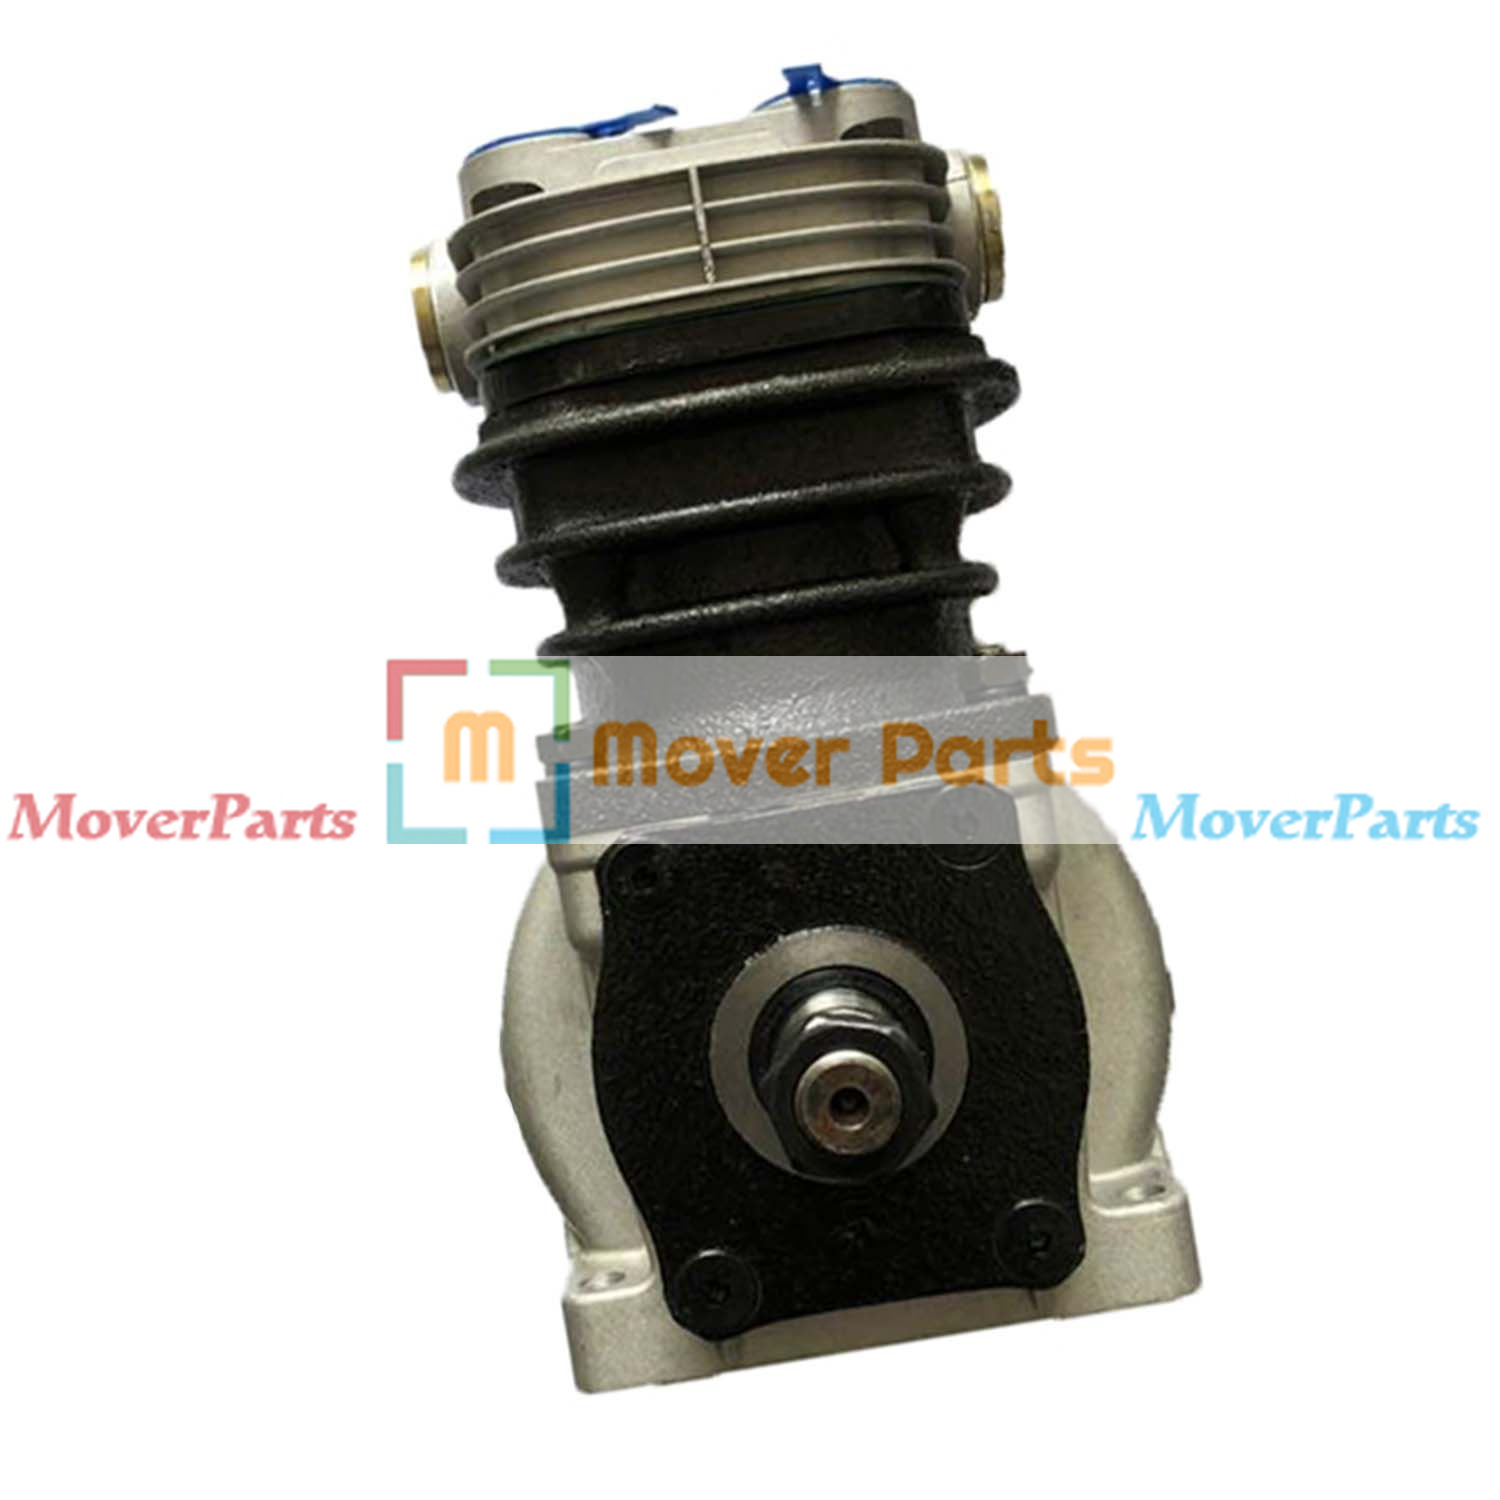 Air Brake Compressor 5000249136 5000047358 For Renault S110 S130 S150 Jp11 Jp13 Gf151 Auto Replacement Parts